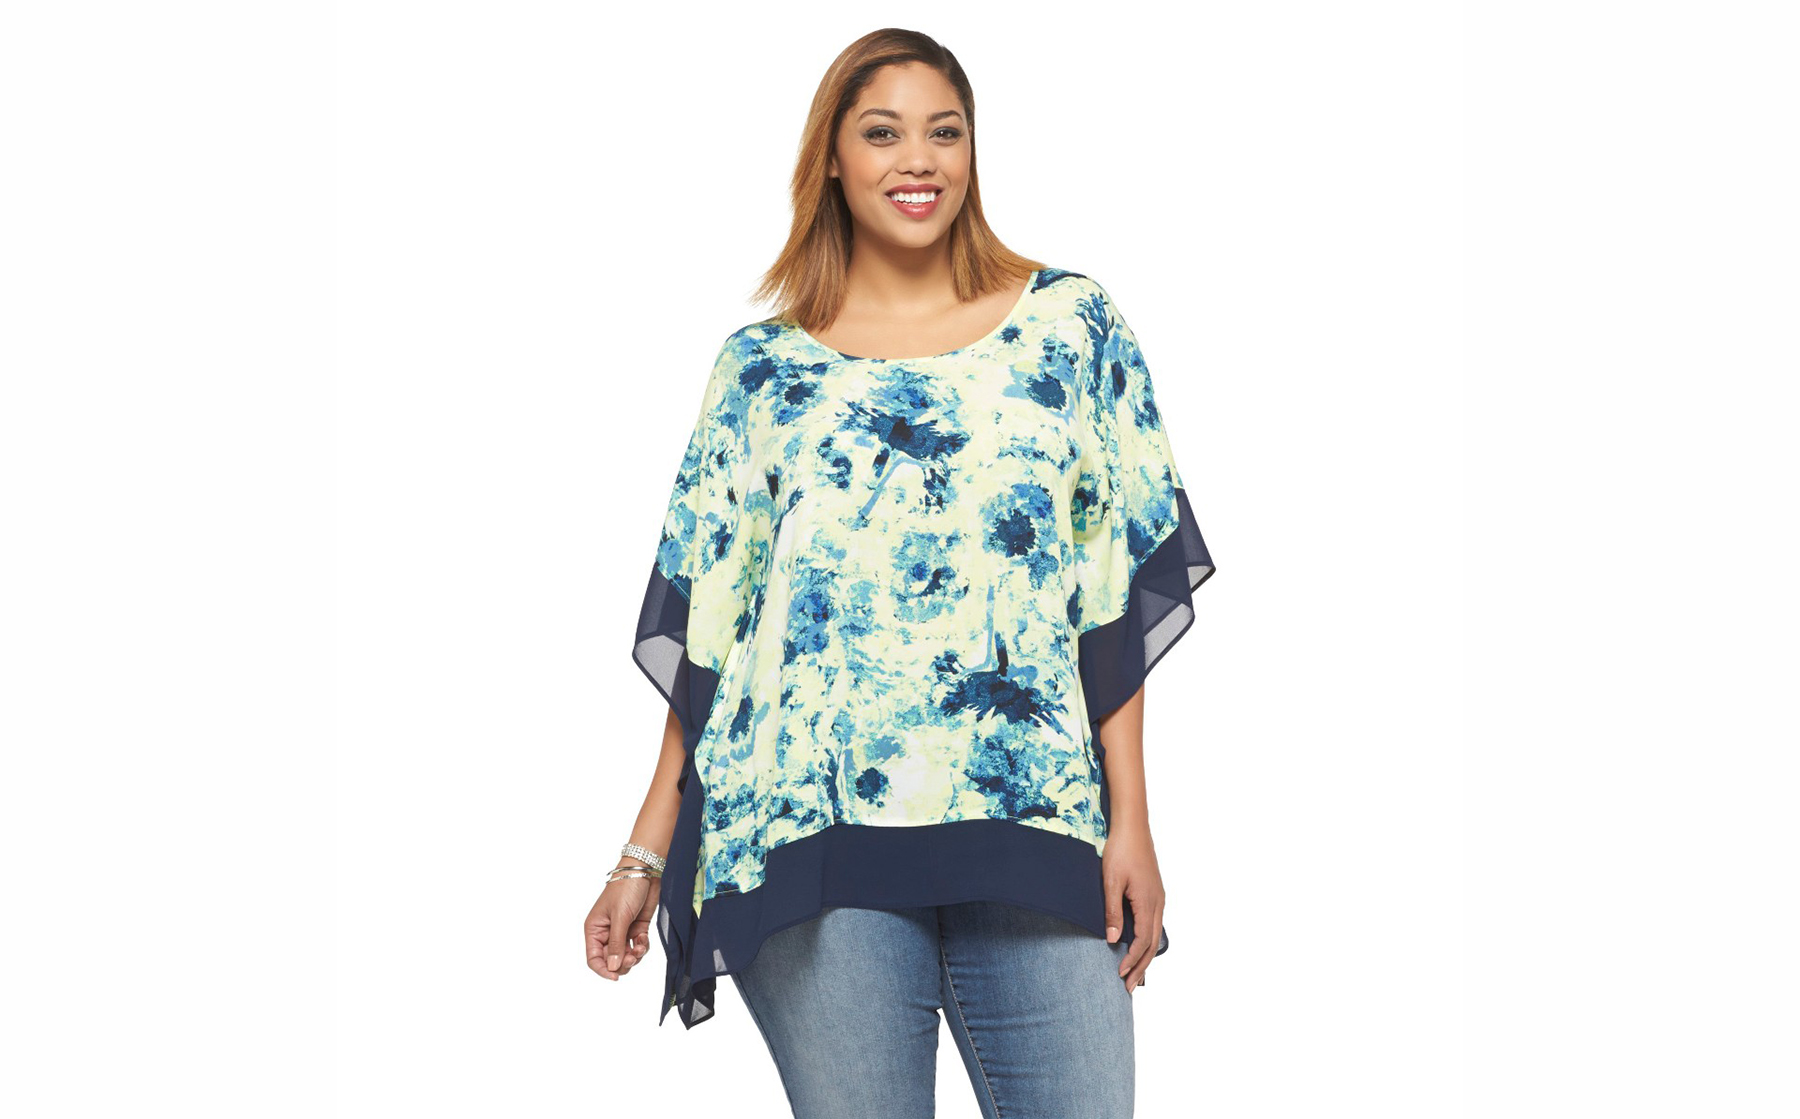 fea0527242f2 9 Clothing Brands That Are Revolutionizing the Plus-Size Market ...